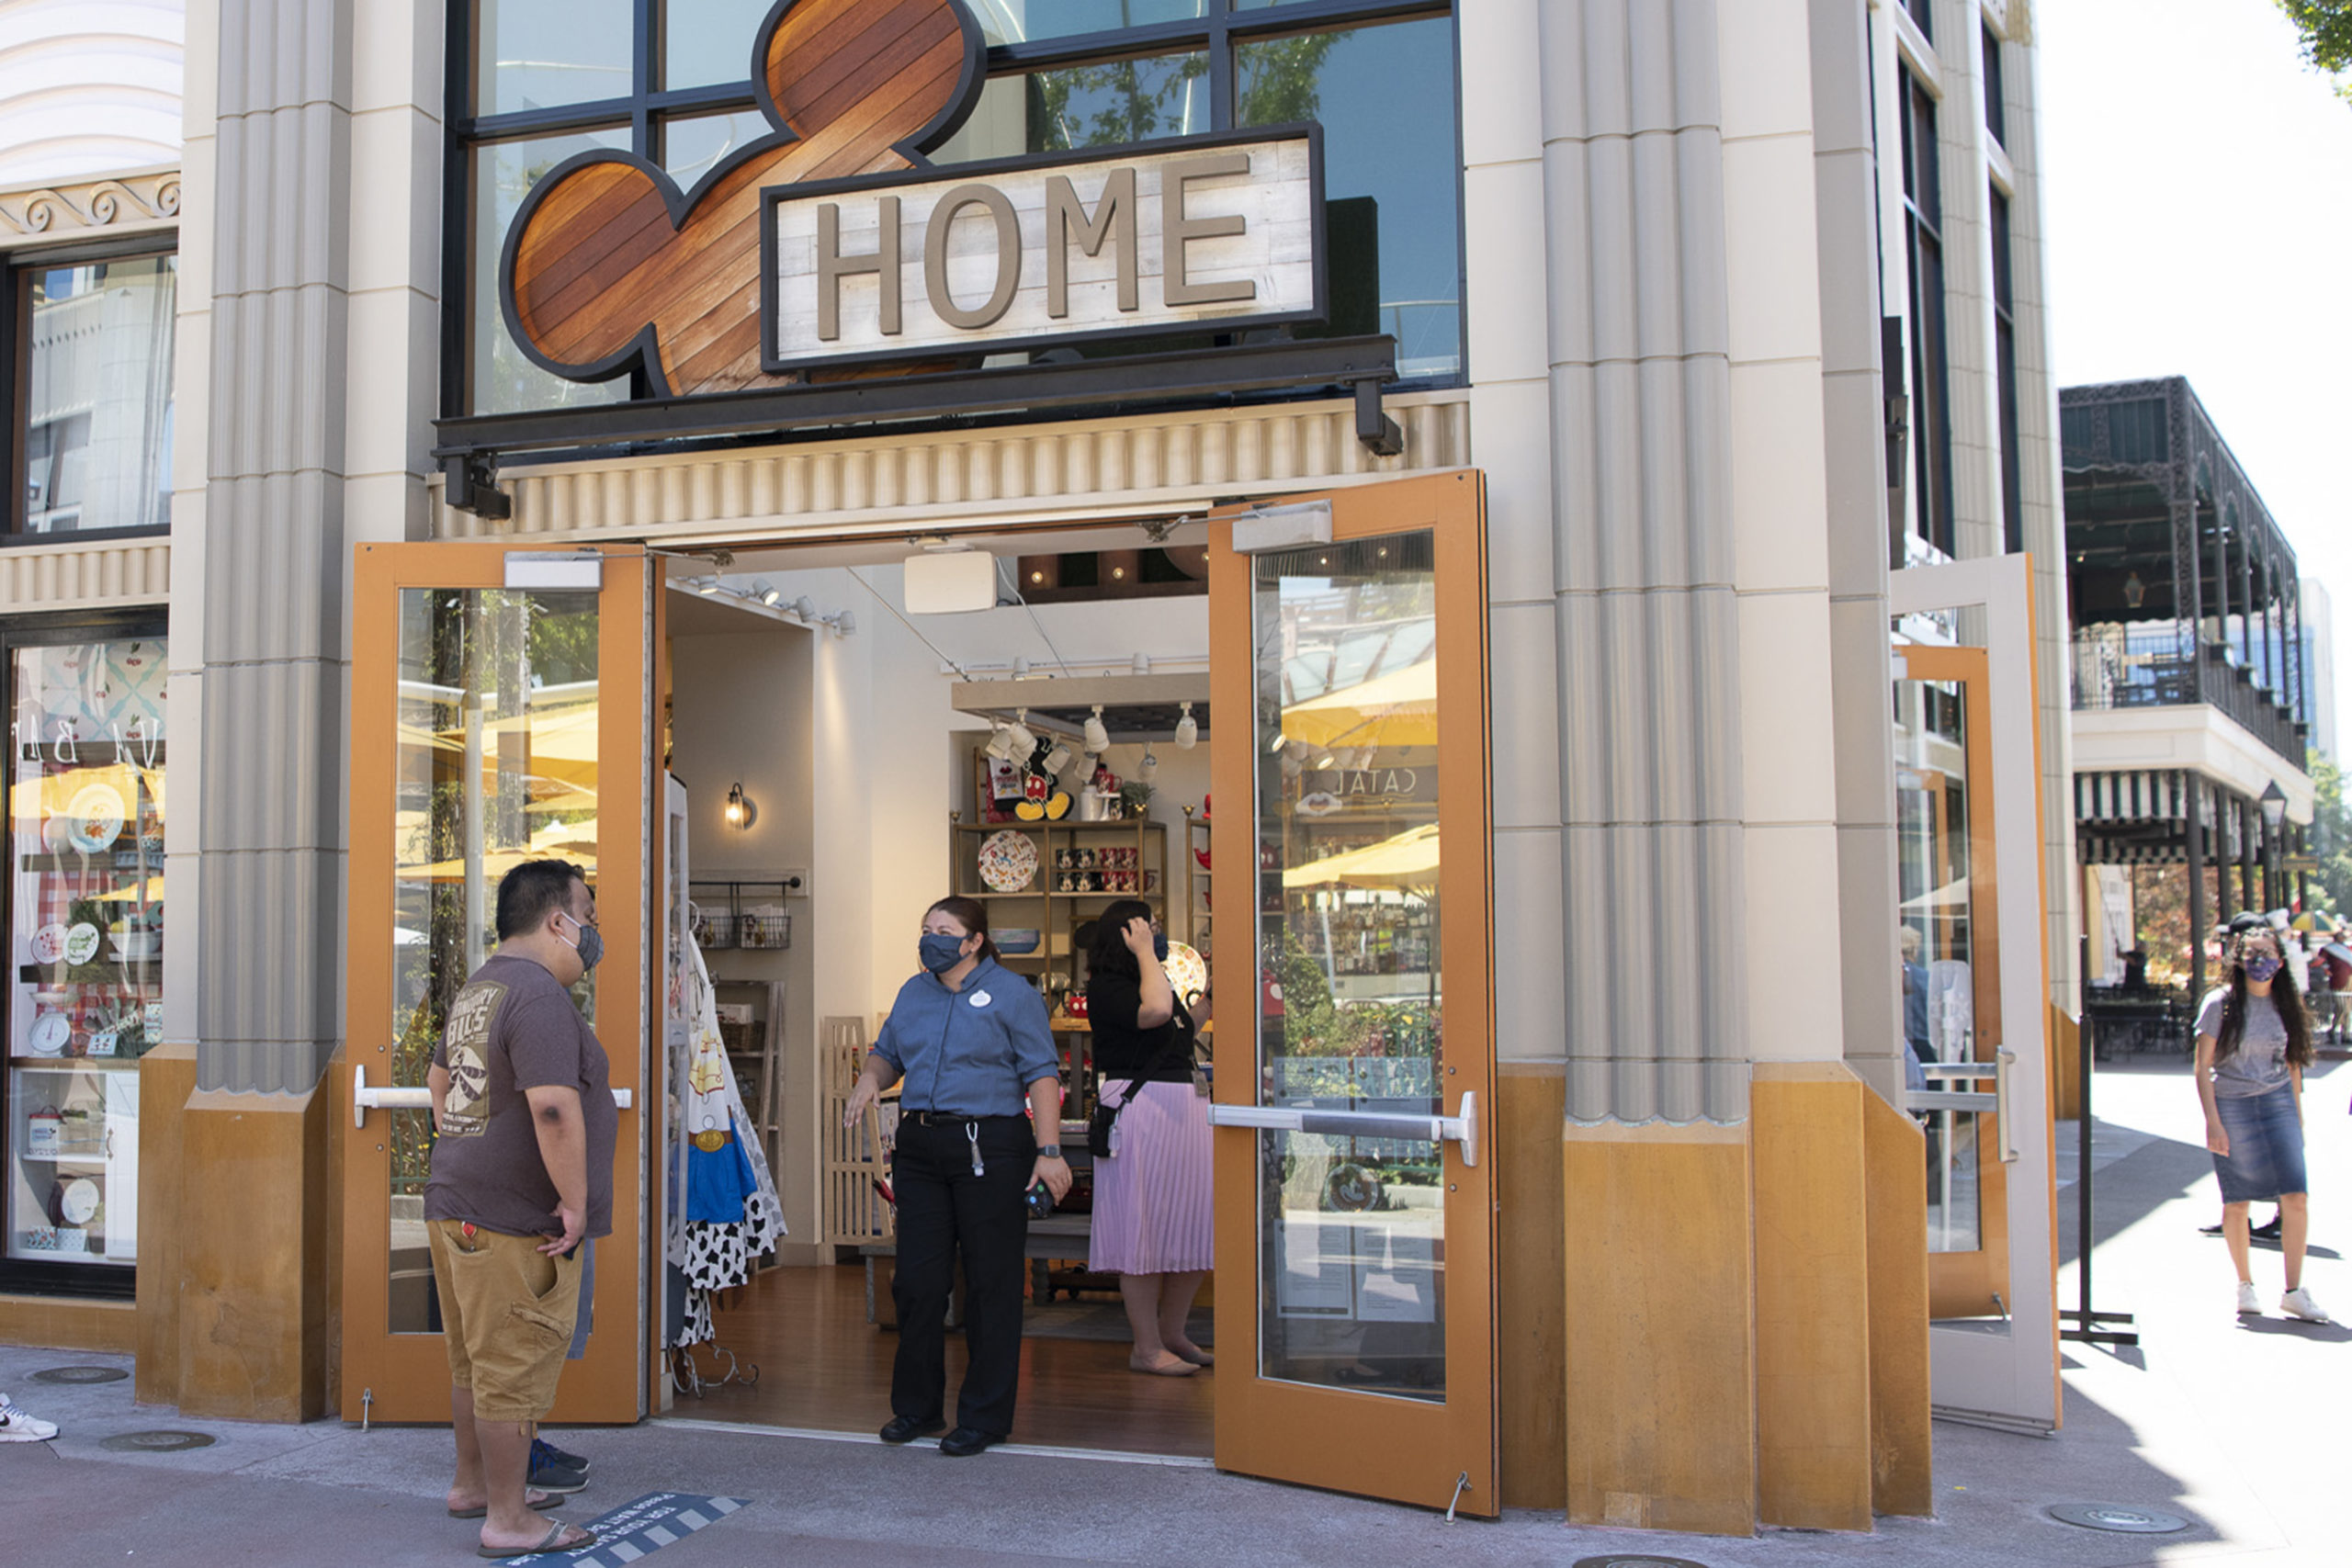 downtown disney home store